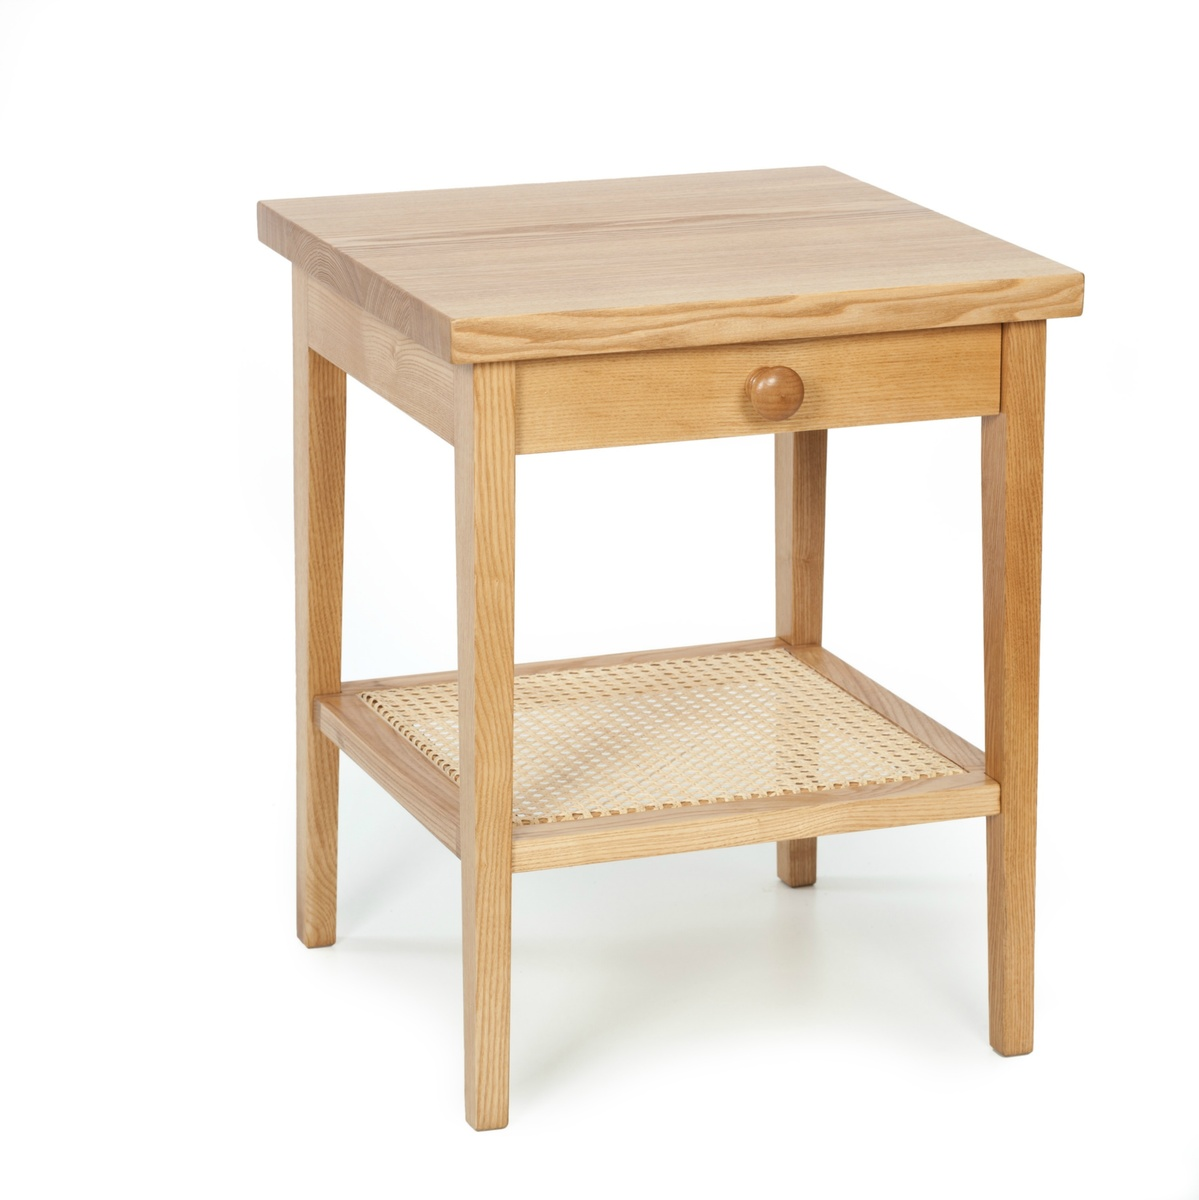 Quality Wooden Bedside Table Robinsons Beds